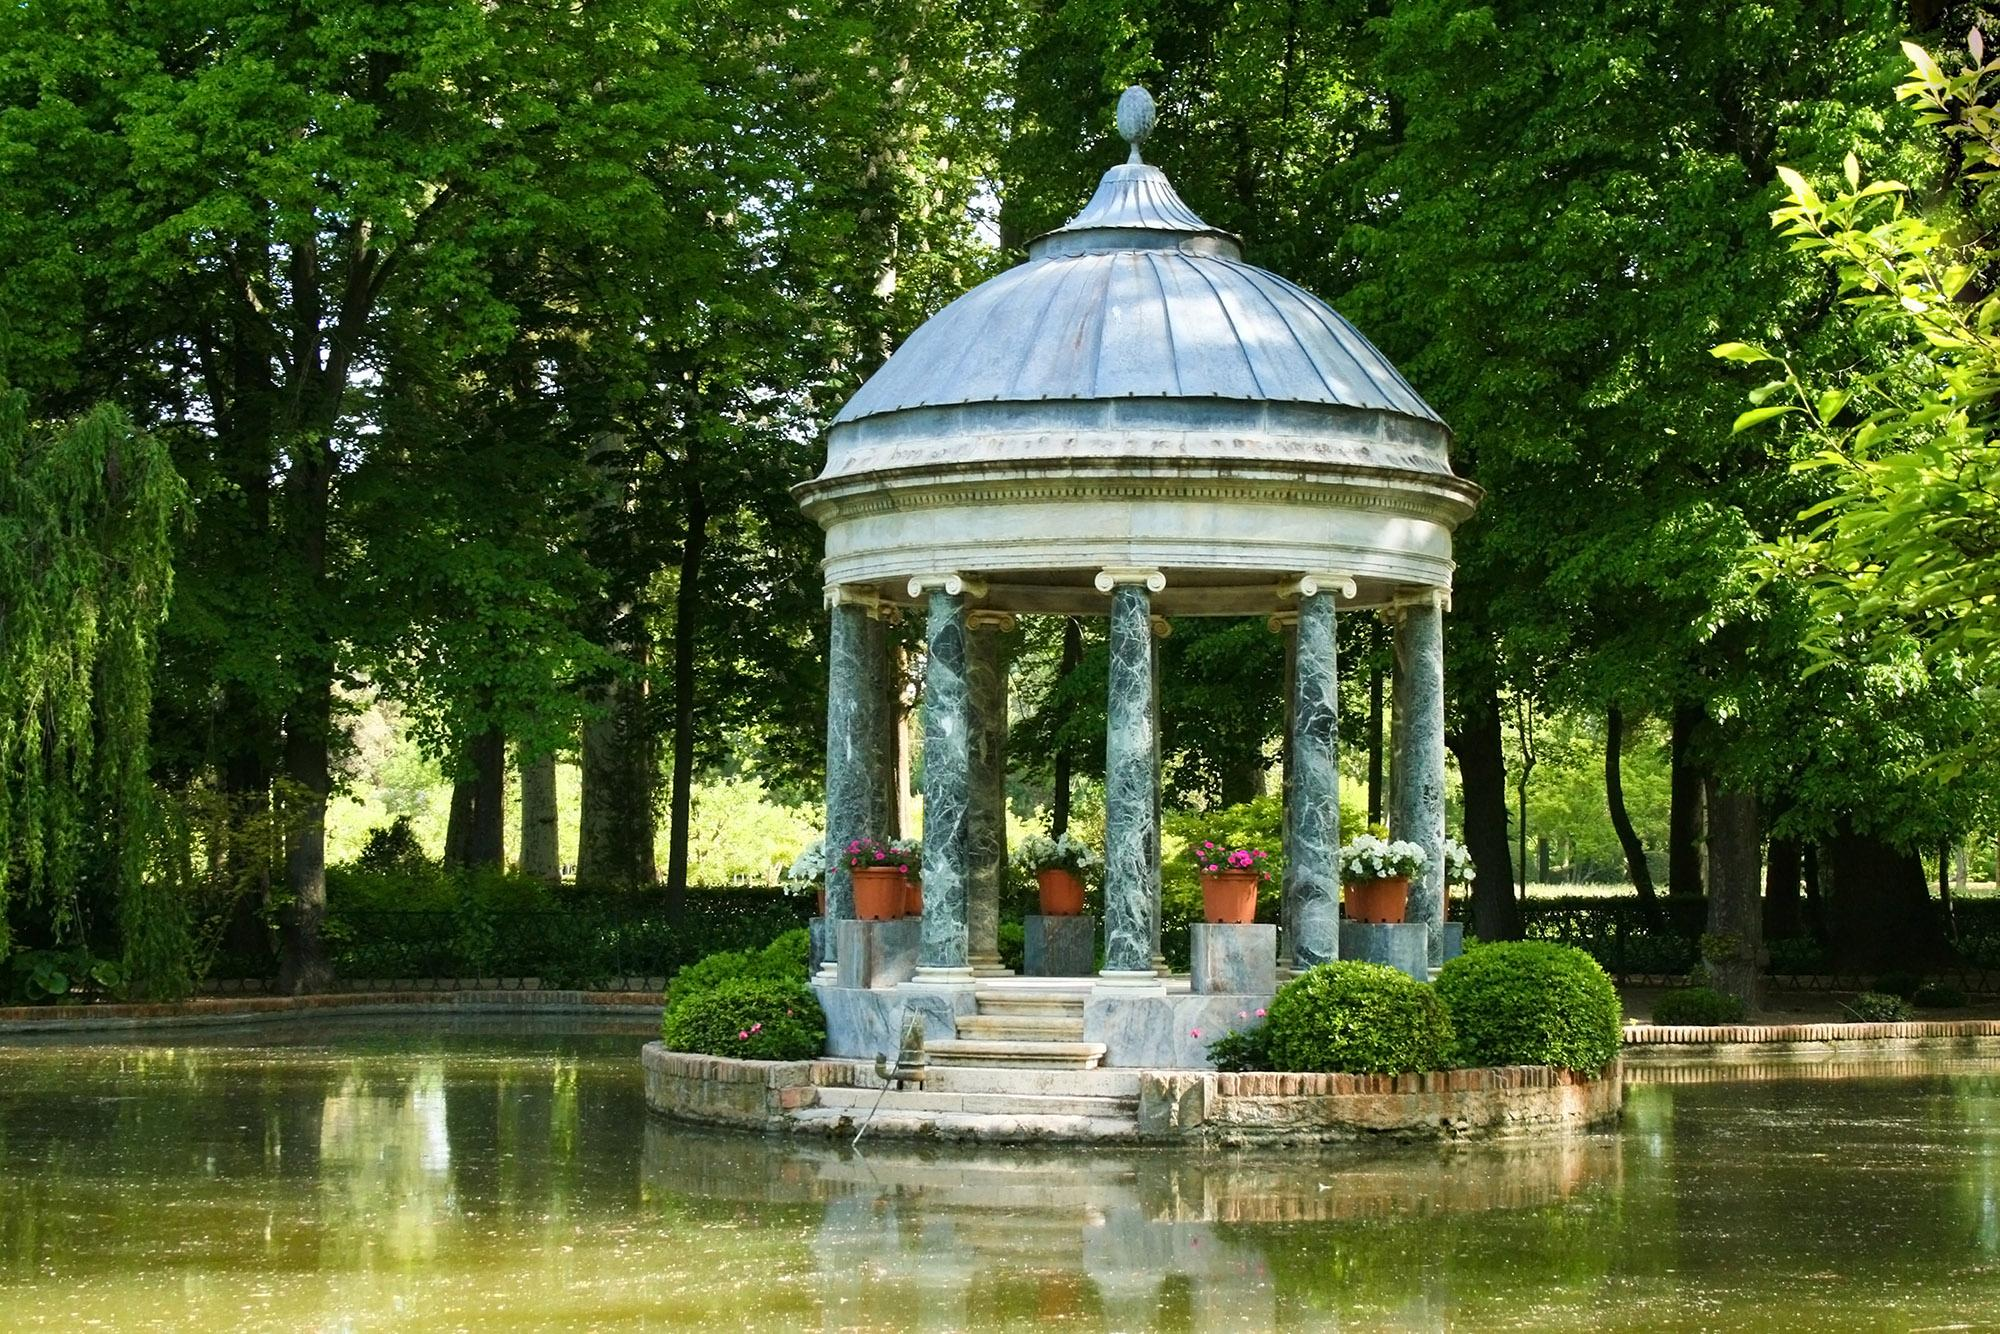 The Greek Pavilion in the Chinese Pond of the Prince's Garden was built by Juan de Villanueva in the 18th century. It features a series of Ionic columns supporting a roof crowned with a bronze pineapple.  – © TalyaPhoto / Shutterstock